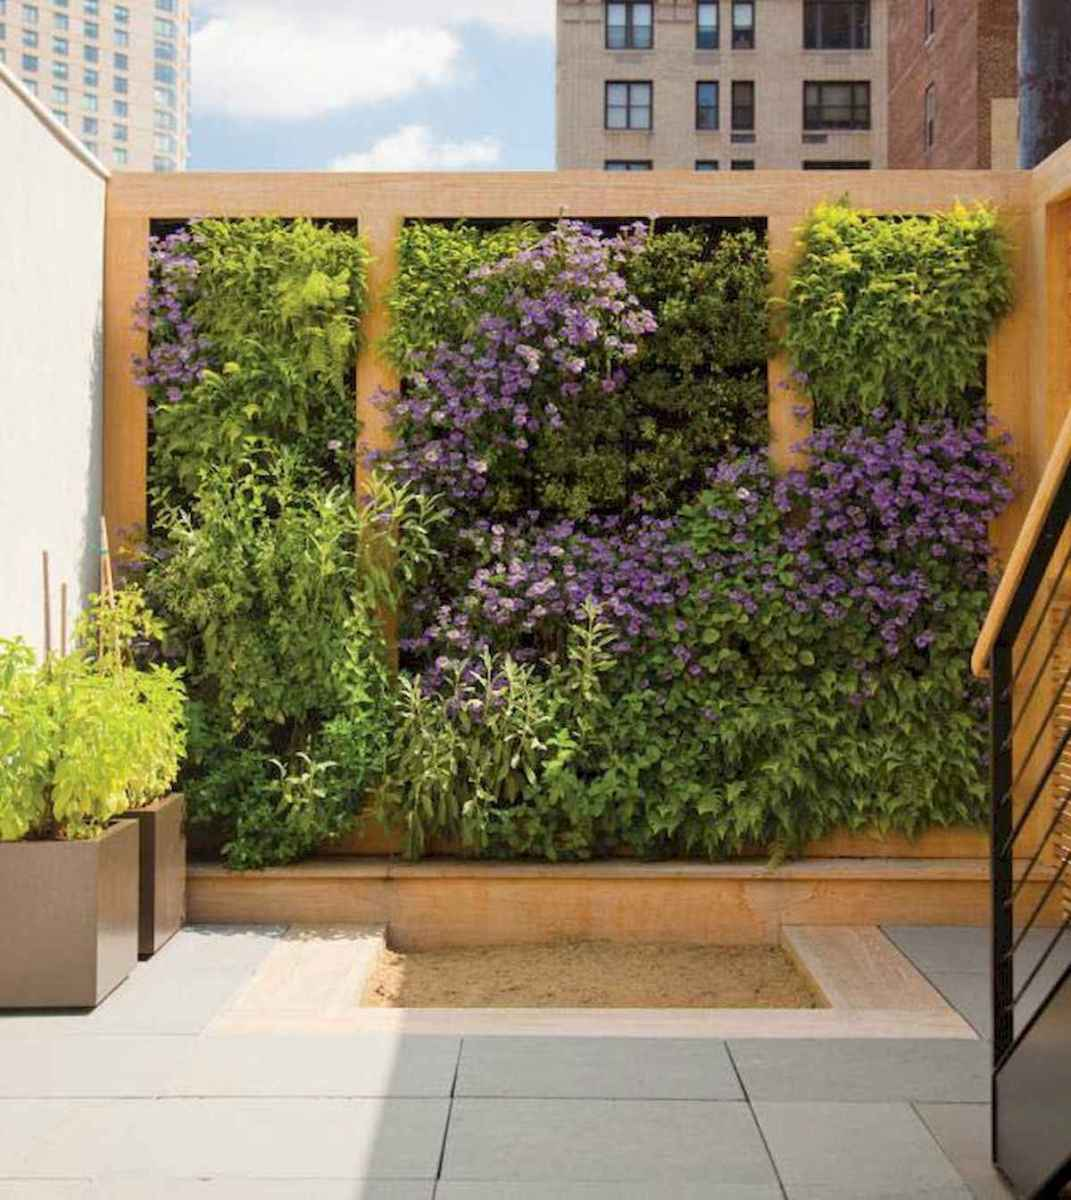 40 beautiful living wall planter garden ideas decorations and remodel (25)